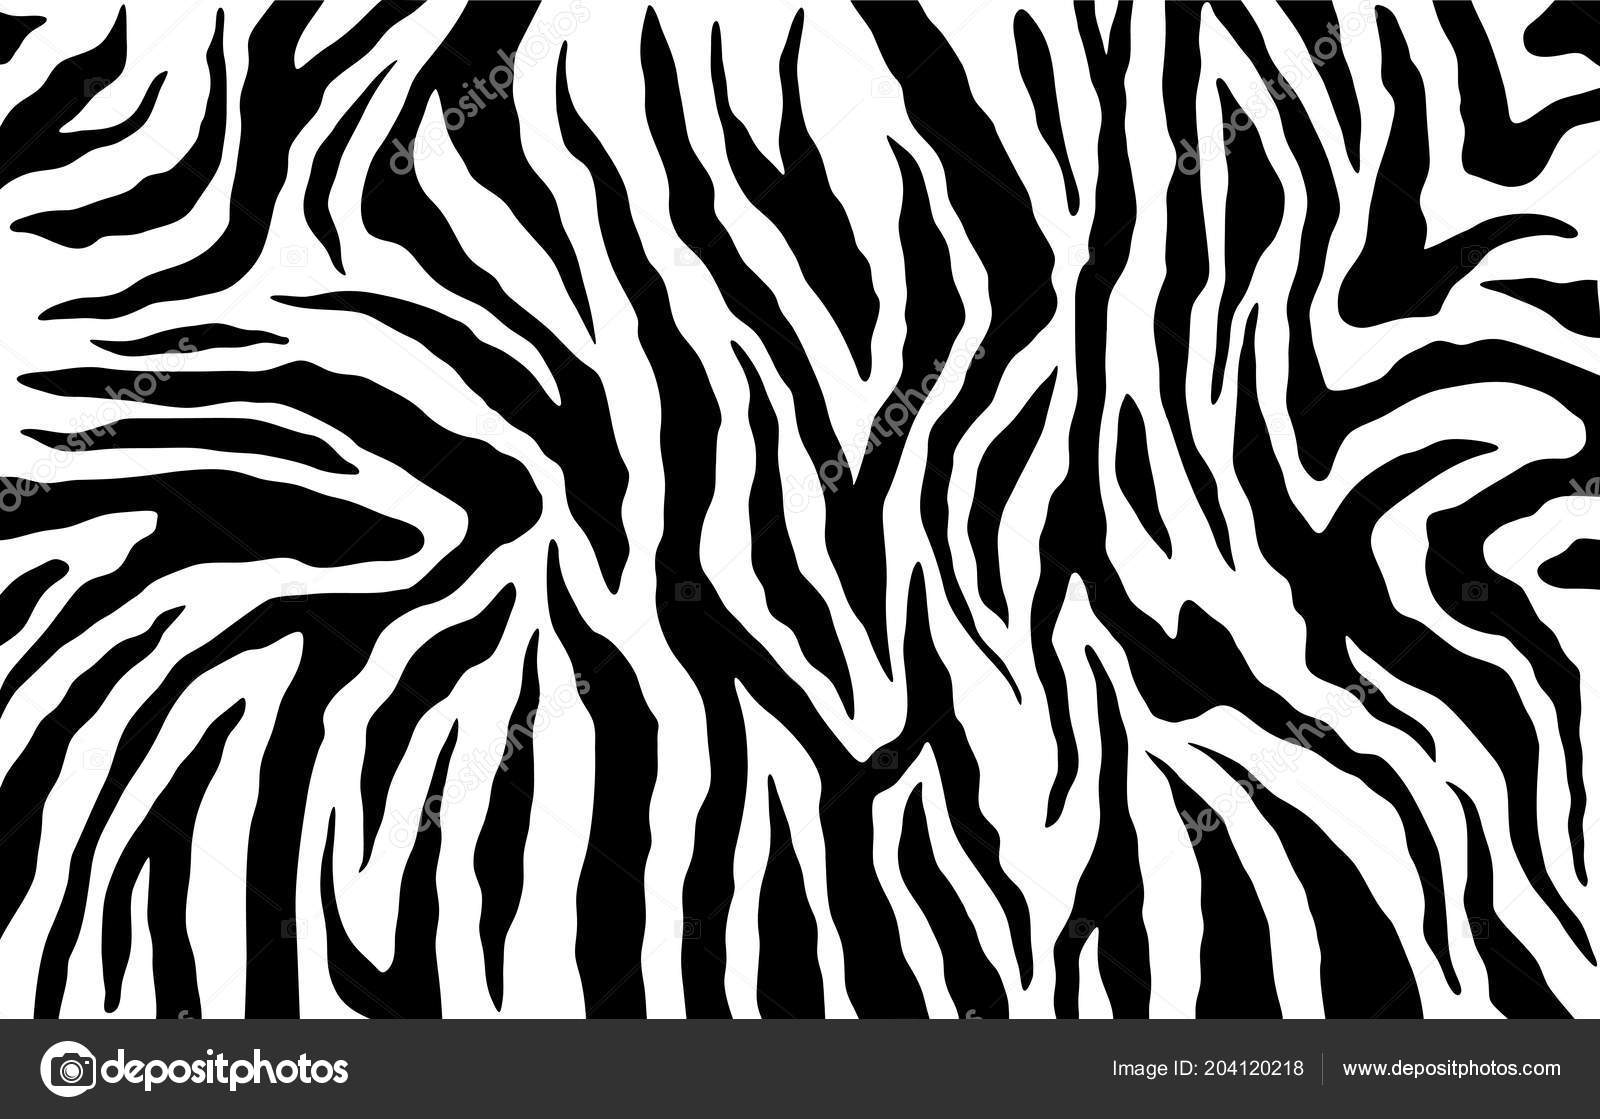 Image of: Desktop Wallpaper Zebra Huid Strepen Patroon Animal Print Zwart Wit Achtergrond Vector Stockvector Depositphotos Zebra Huid Strepen Patroon Animal Print Zwart Wit Achtergrond Vector